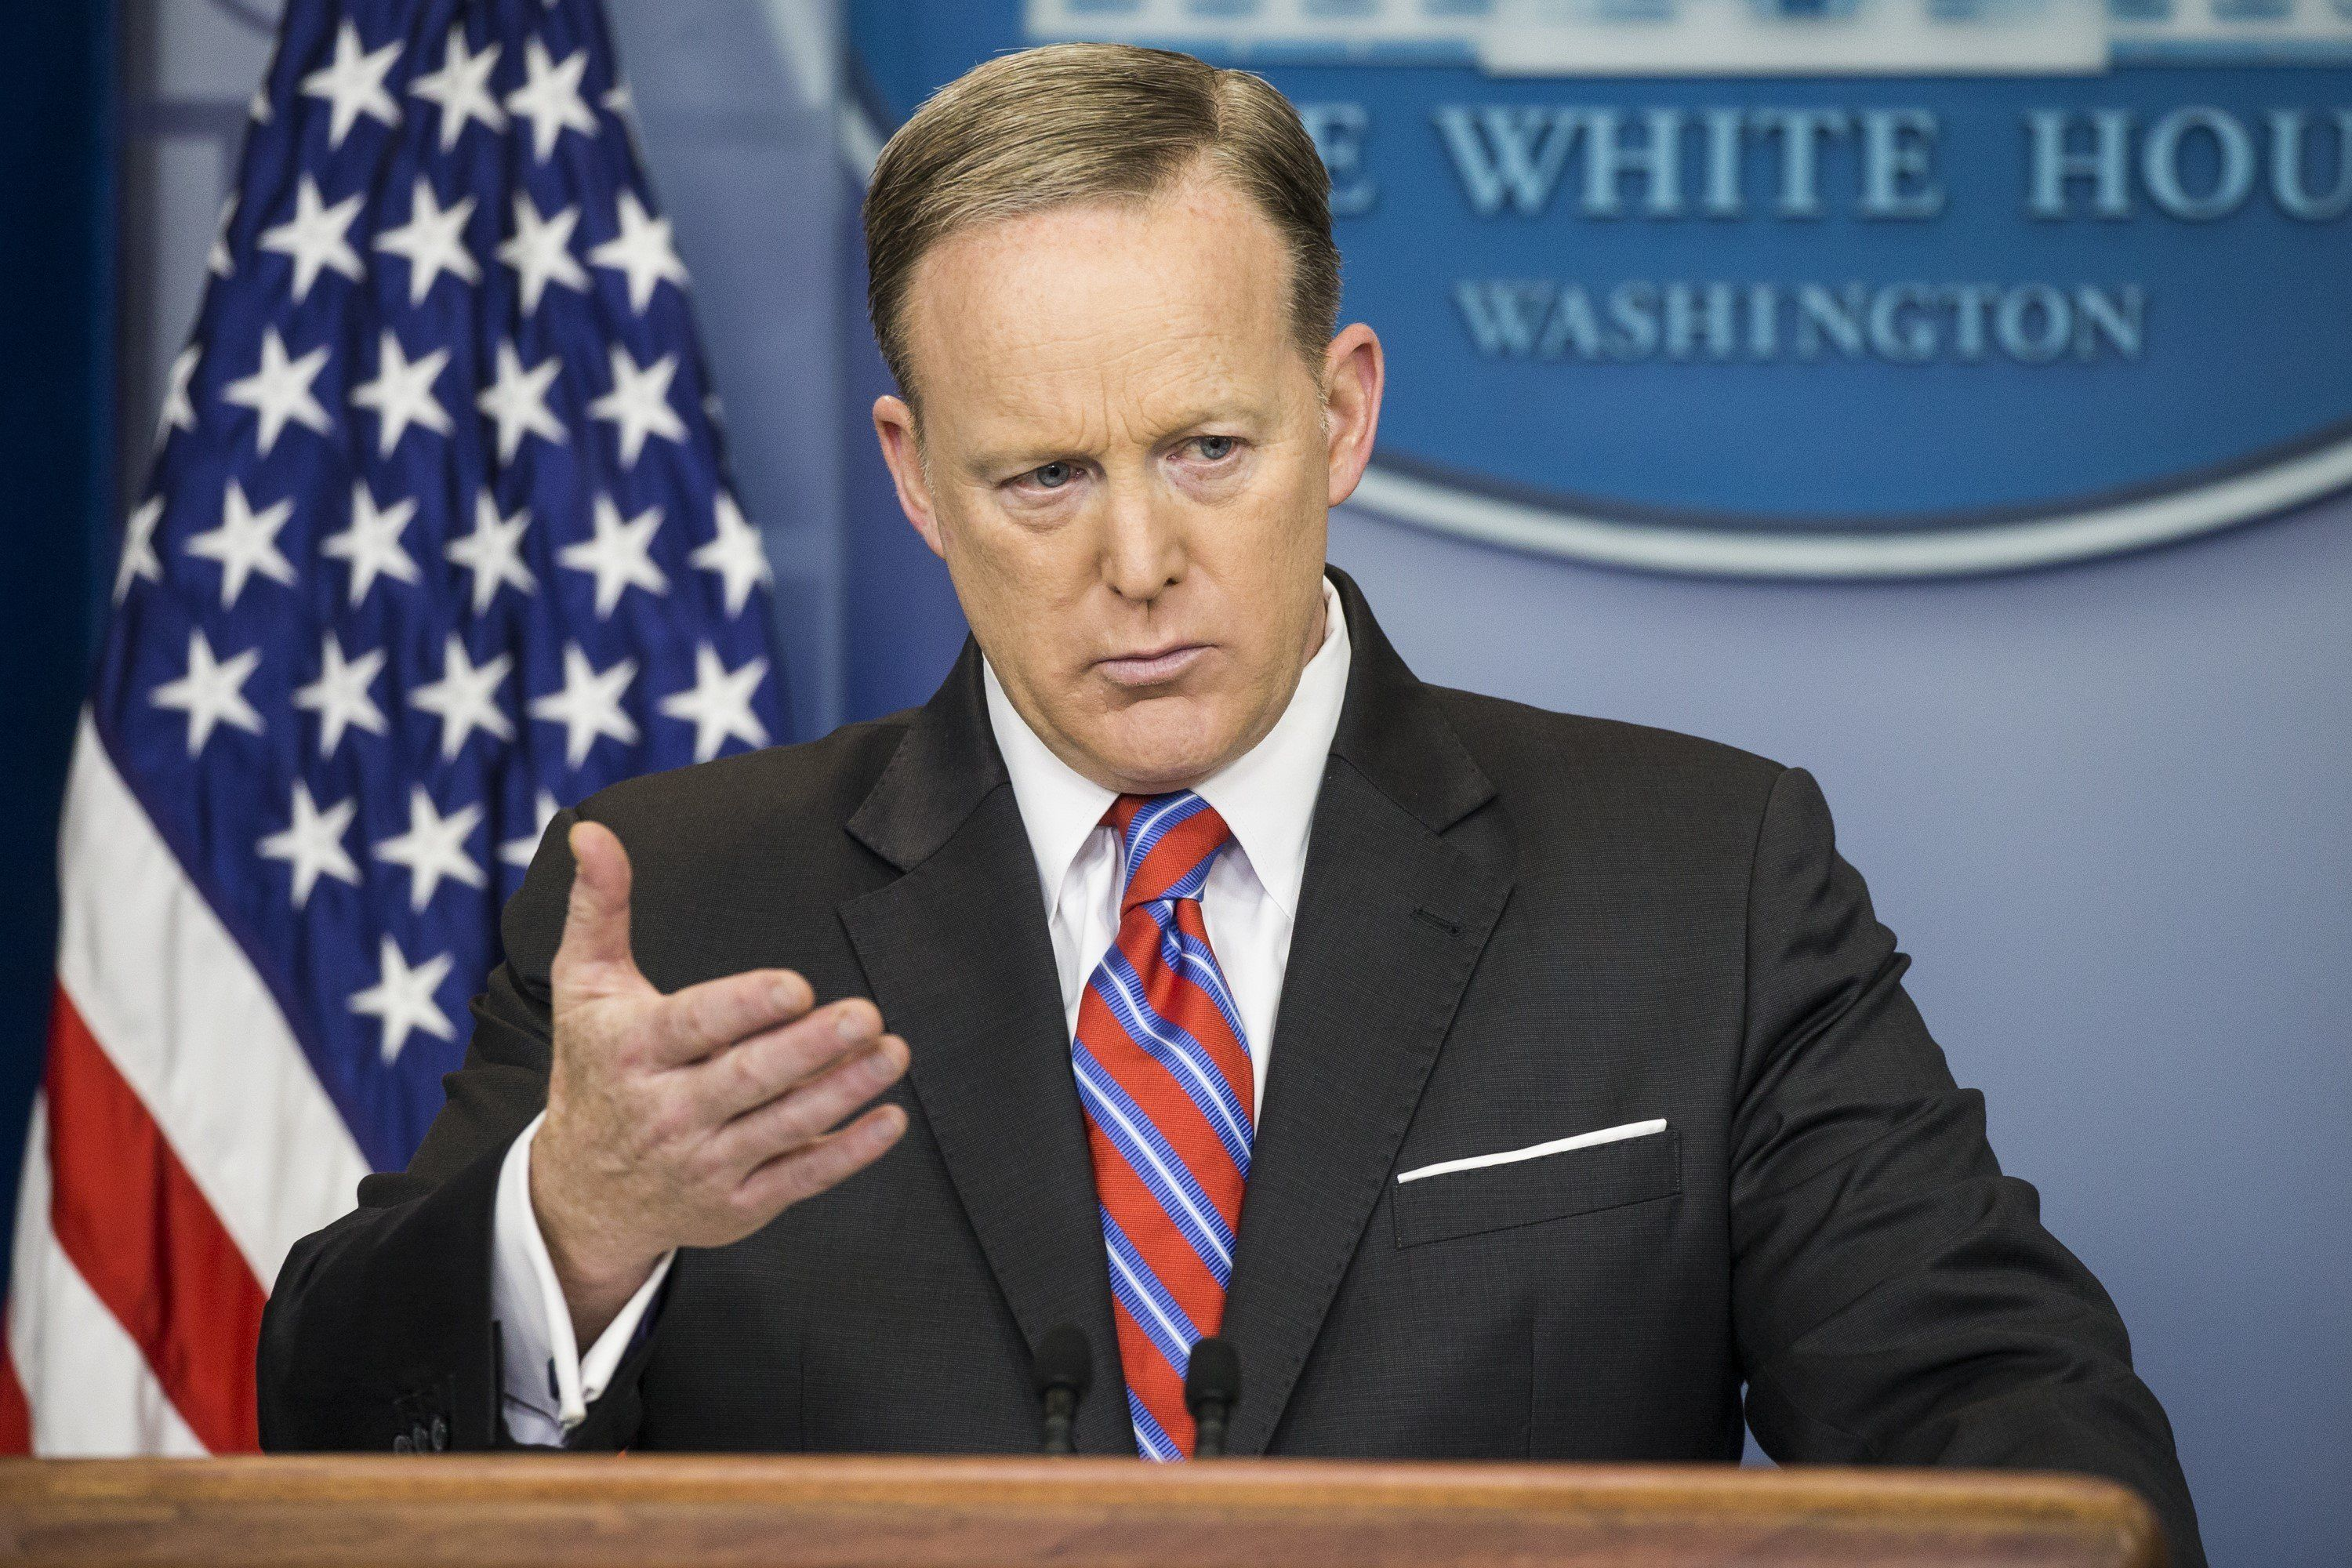 Sean Spicer's First 100 Days Have Been Filled With WTF